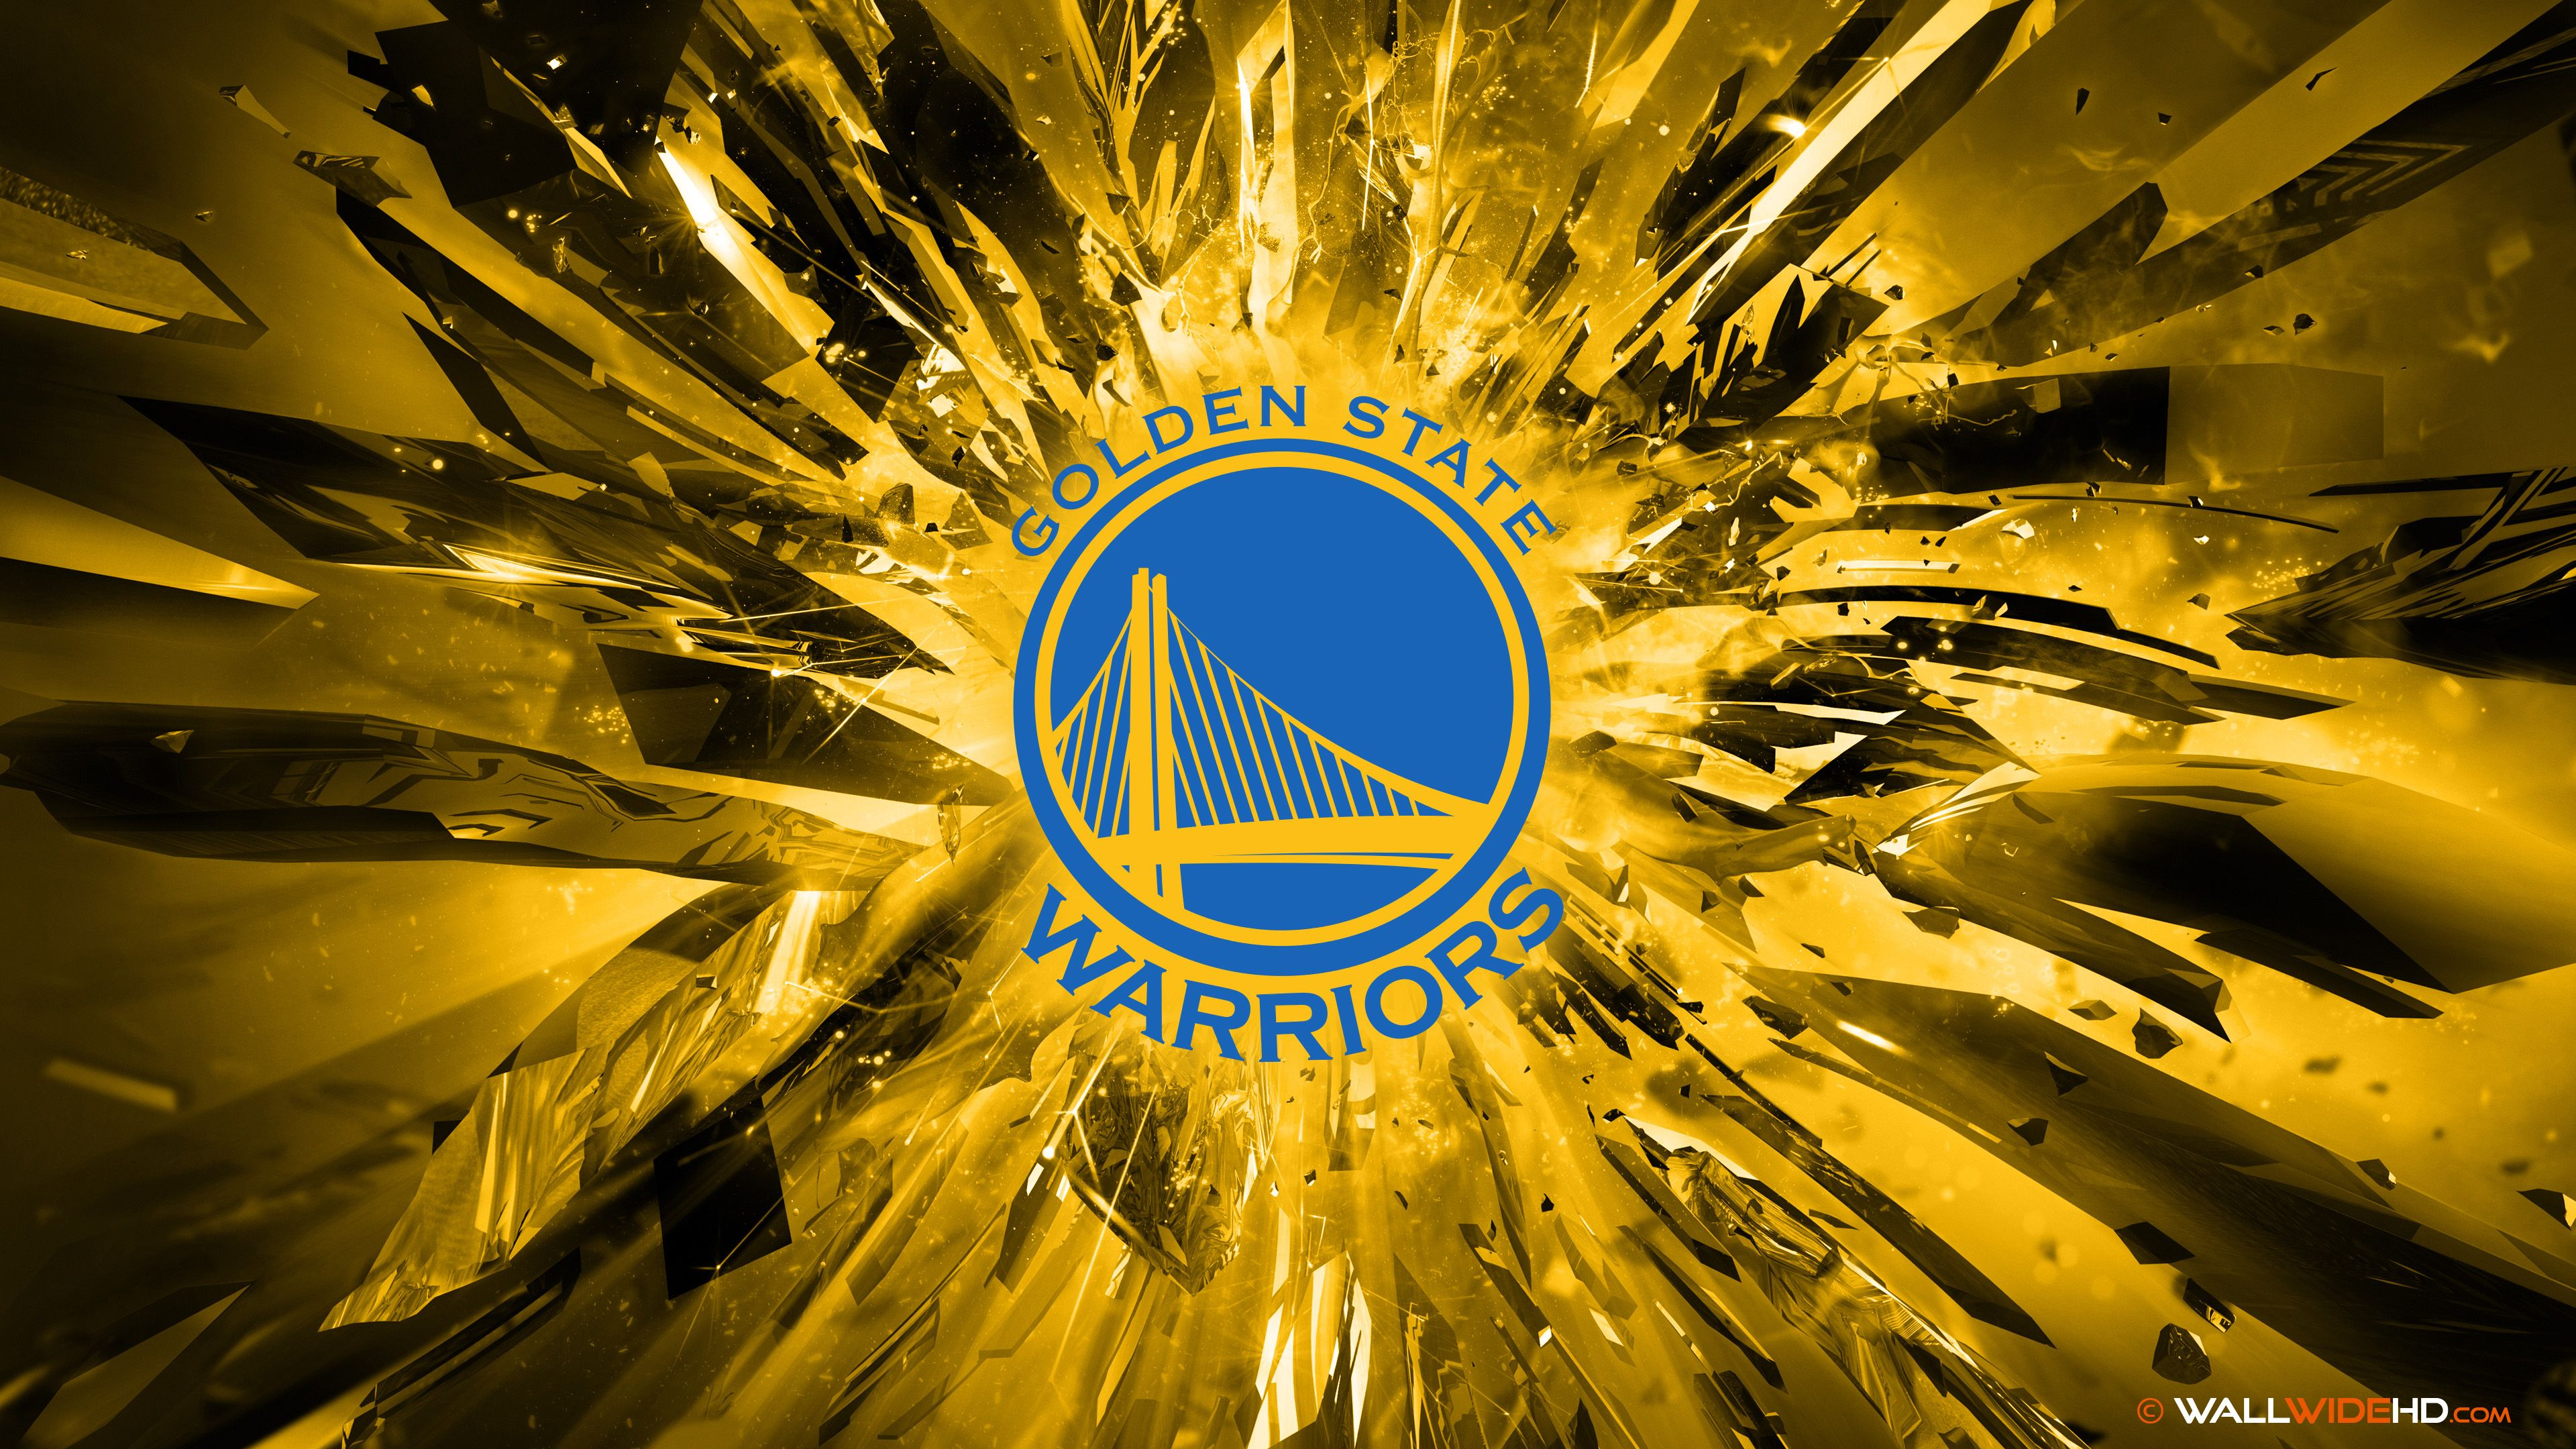 Will The Golden State Warriors Make History Golden State Warriors Wallpaper Golden State Warriors Logo Golden State Warriors